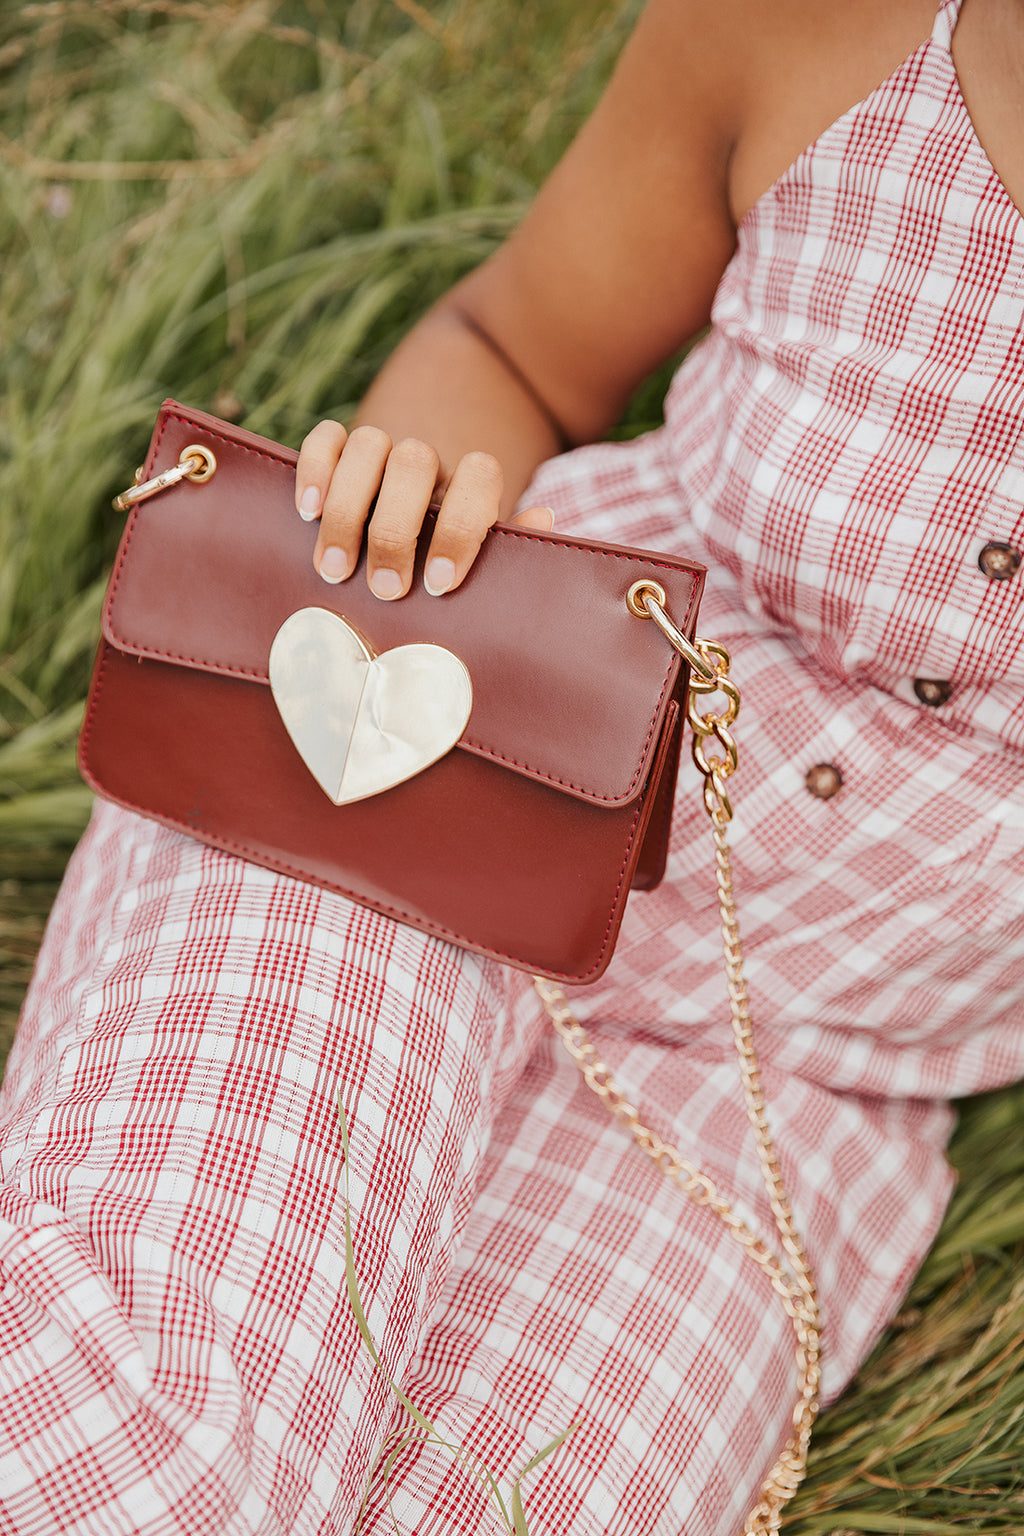 Heart Chain Crossbody Bag - Sugar + Style